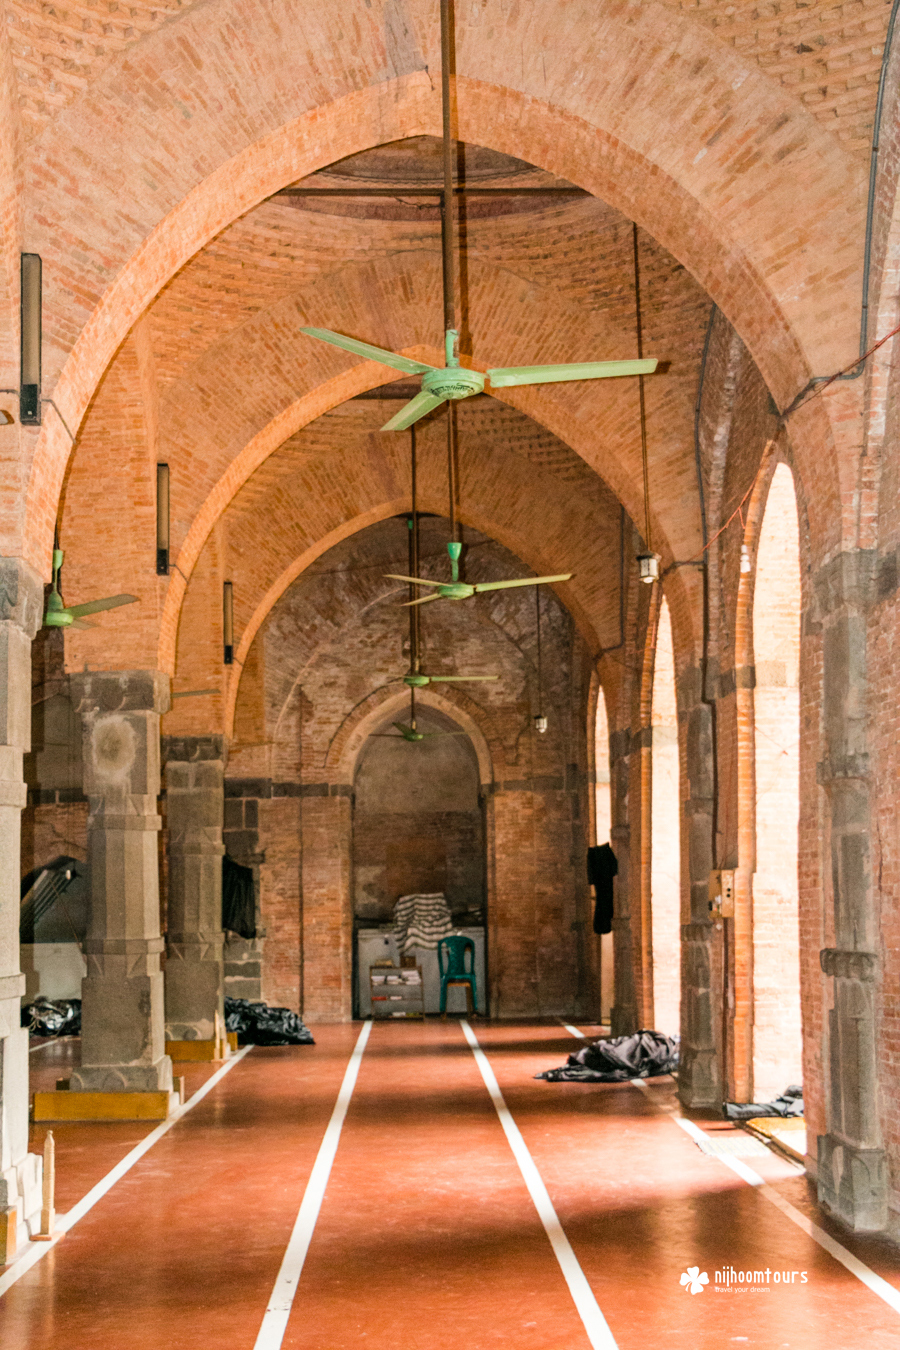 Inside view of Bagha Mosque, a beautiful medieval period mosque in Bangladesh